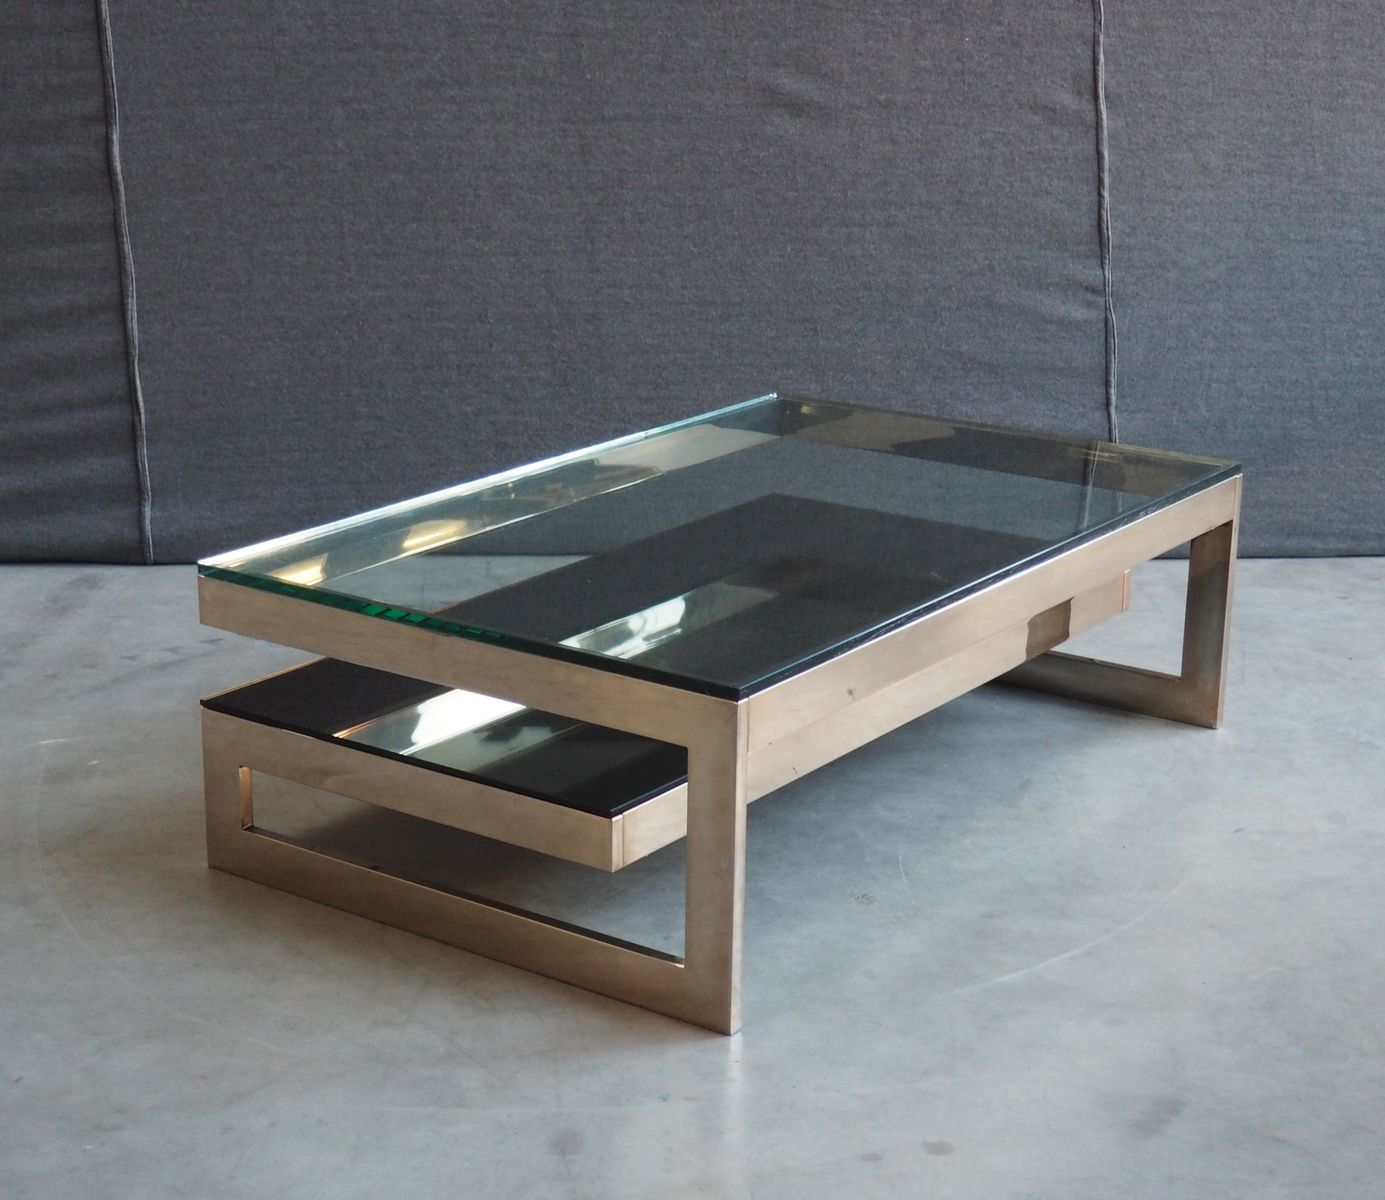 Gold Plated And Glass Top Coffee Table By Belgochrom 1970s For Sale At Pamono